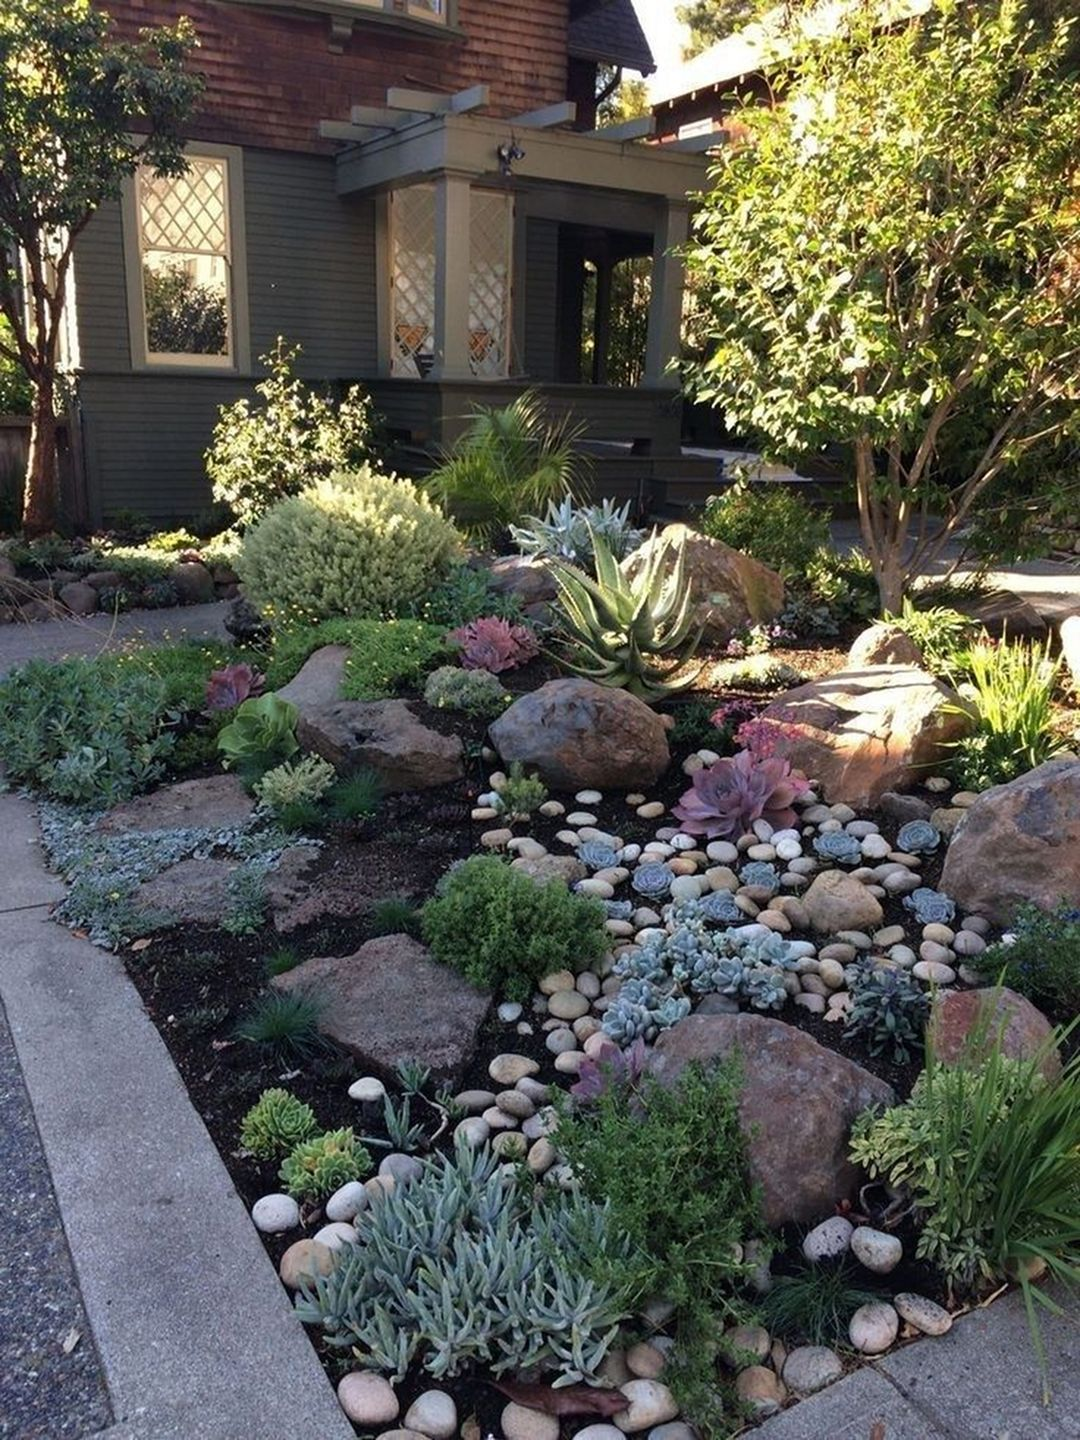 6 Wonderful Backyard Landscaping Ideas On A Budget in 6